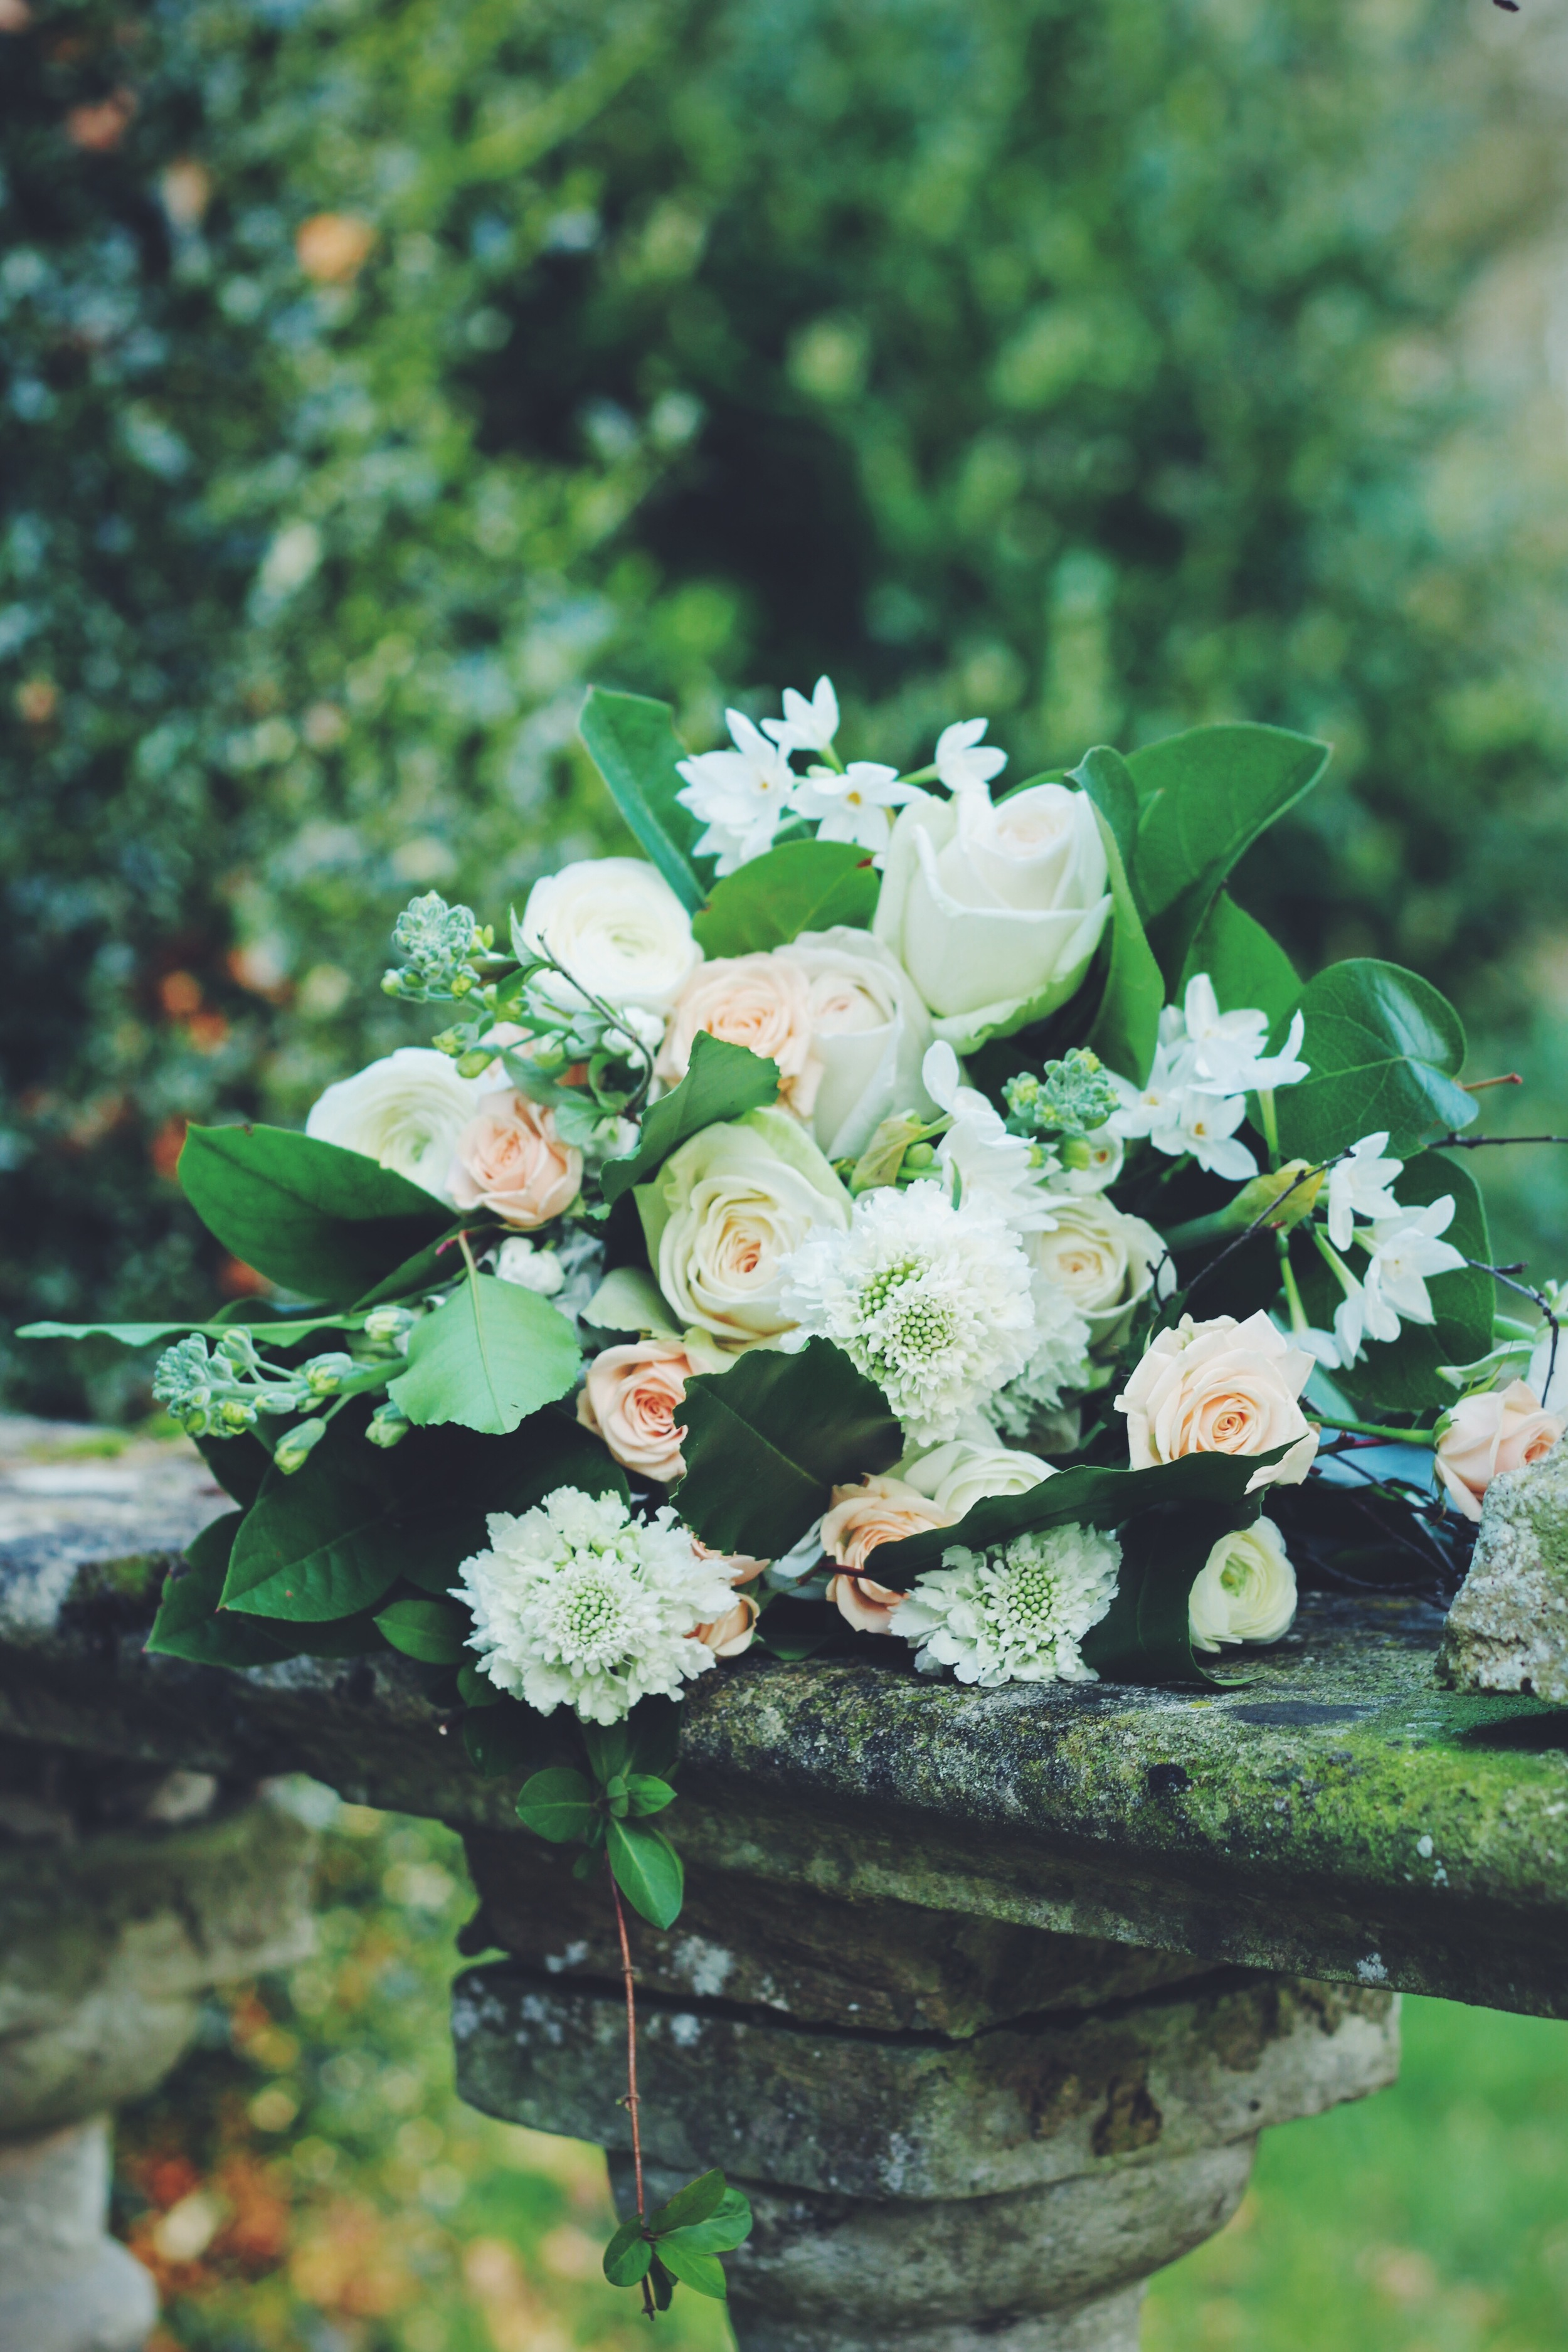 garden style bouquet by Jennifer Pinder. White flowers with touches of peach. Flowers include roses, scabious, narcissi and ranunculus